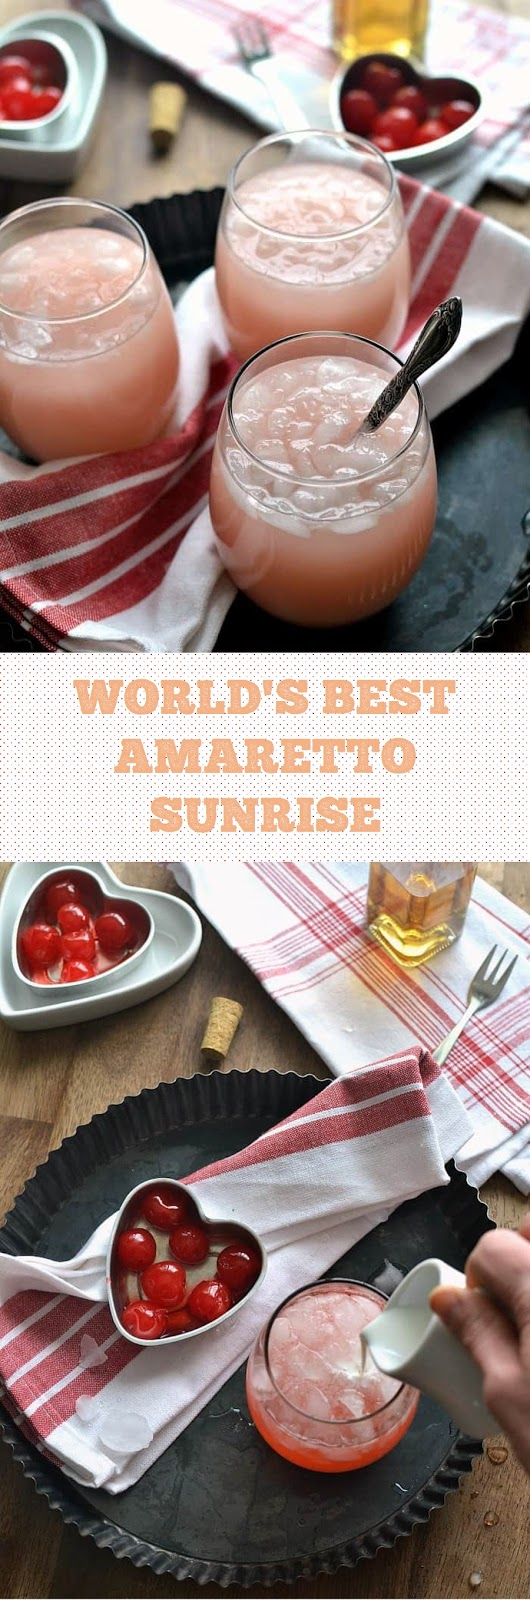 WORLD'S BEST AMARETTO SUNRISE